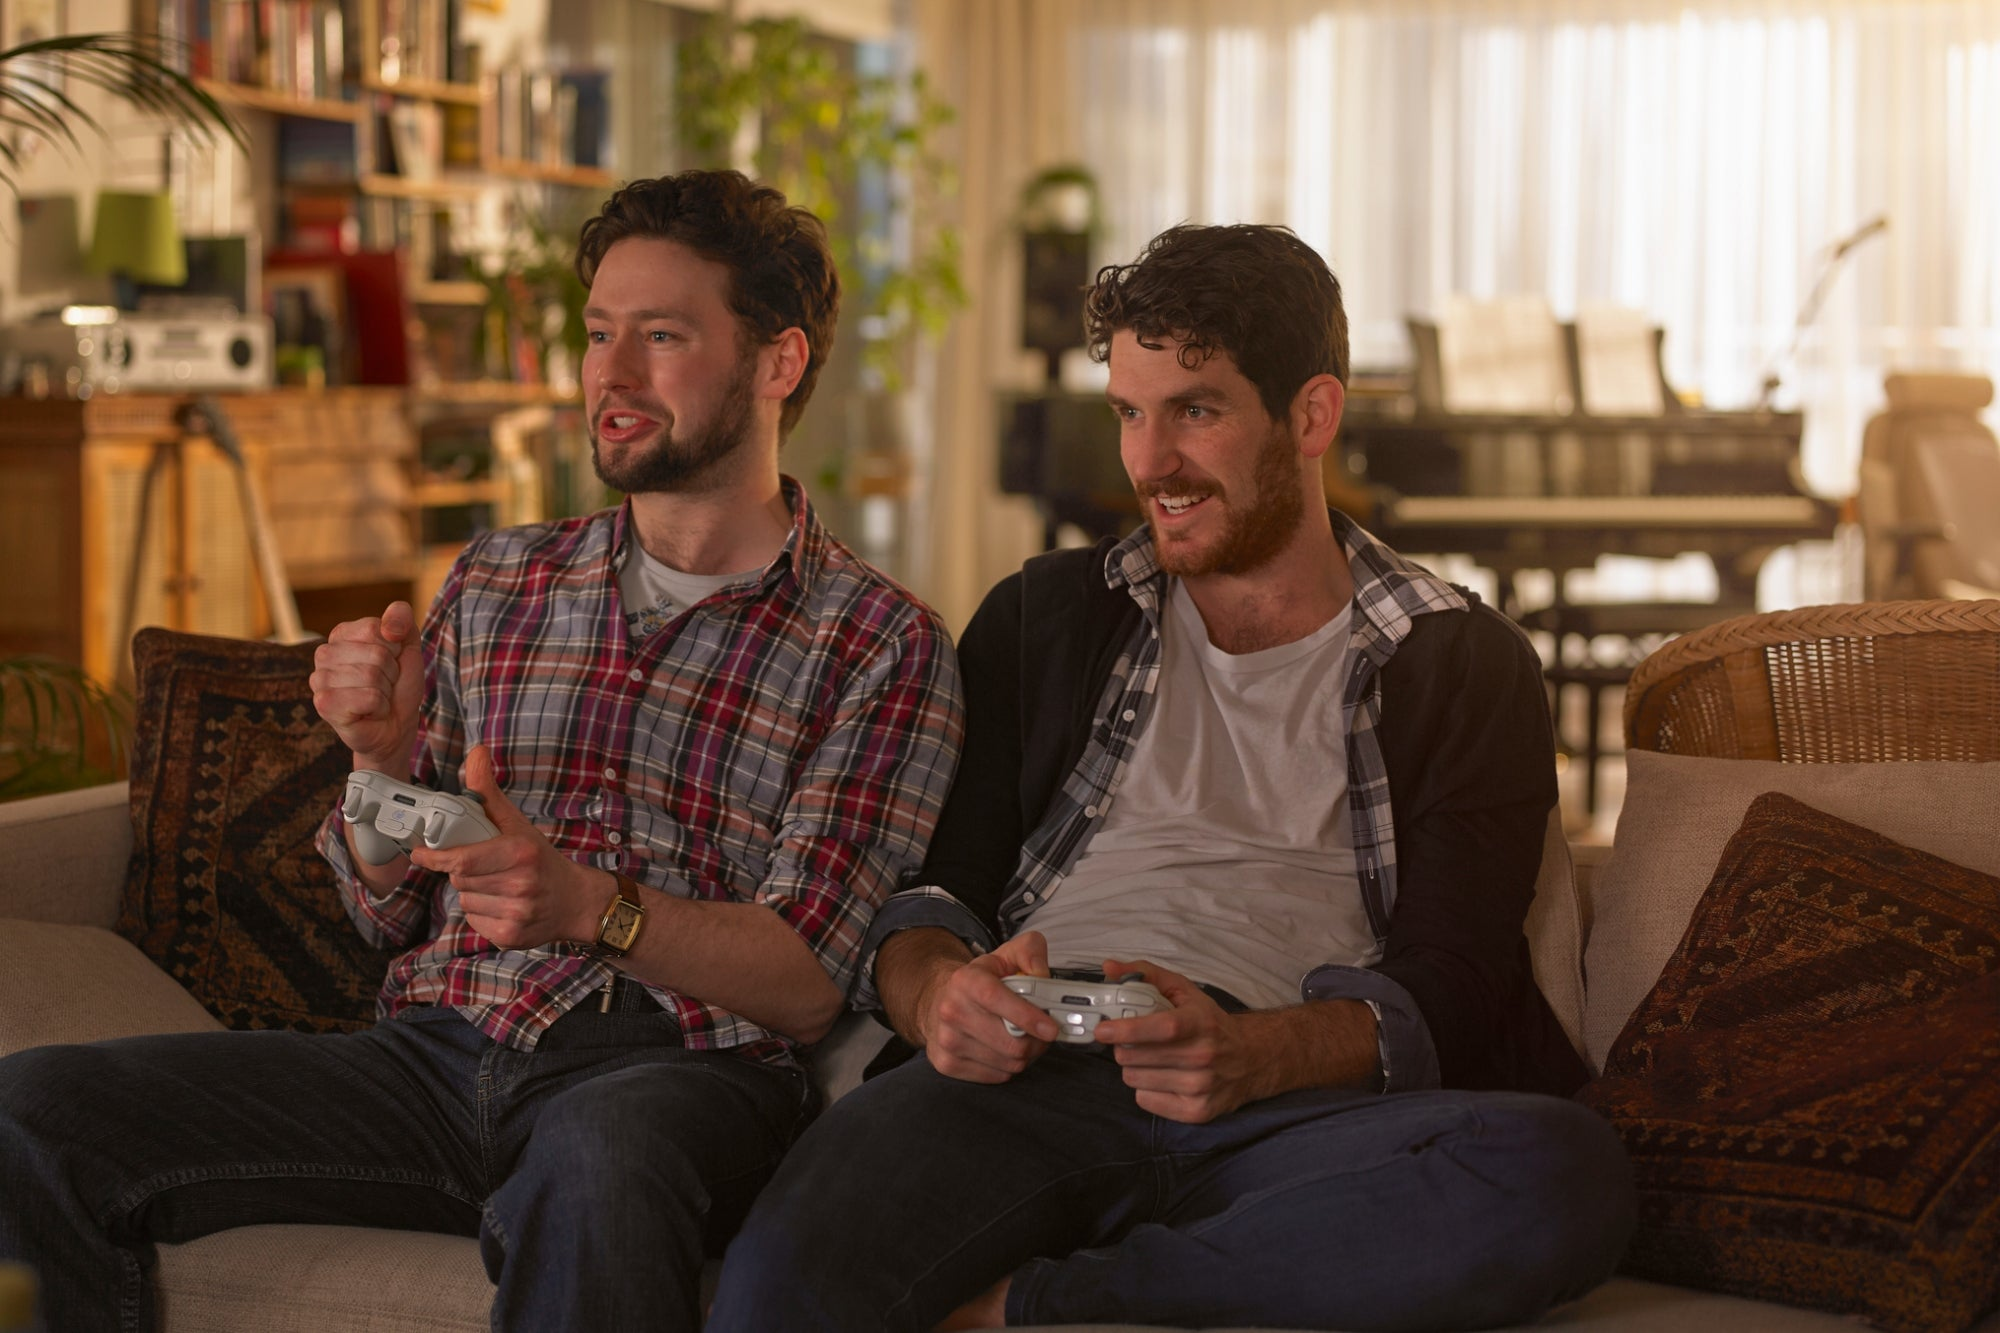 Why Playing Video Games is Good for Your Business and Your Employees